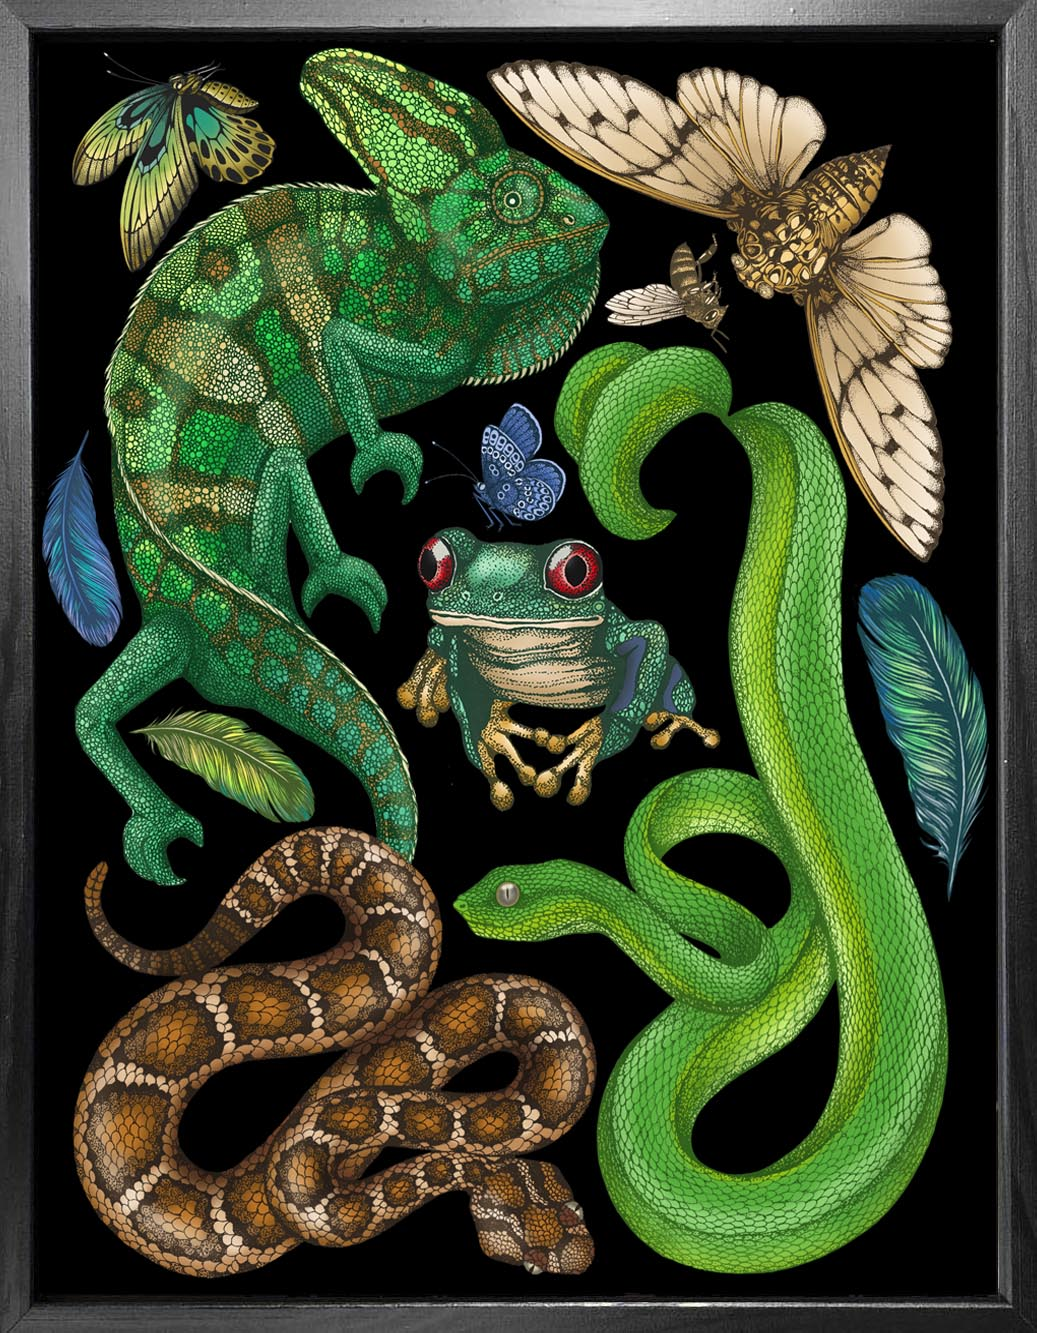 'Antique Reptiles & Amphibians - Black' Fine Art Print